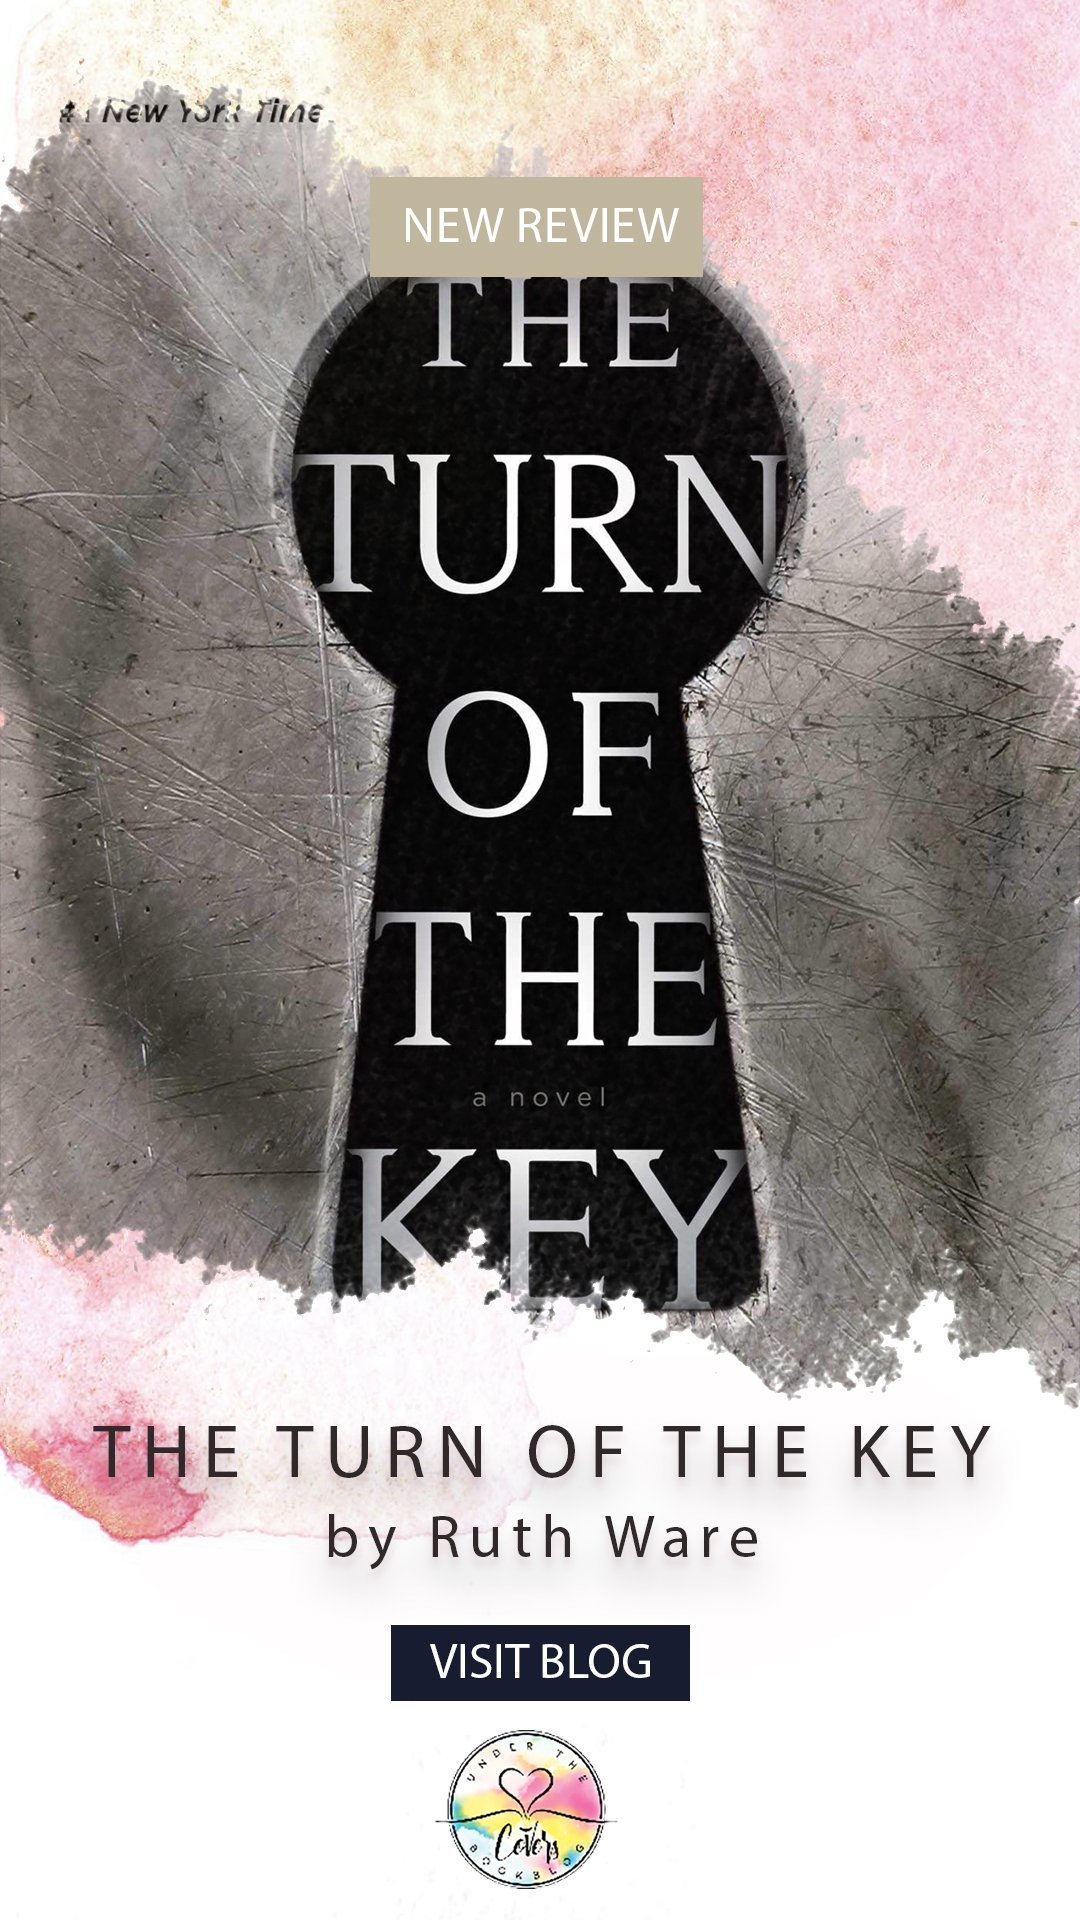 ARC Review: The Turn of the Key by Ruth Ware